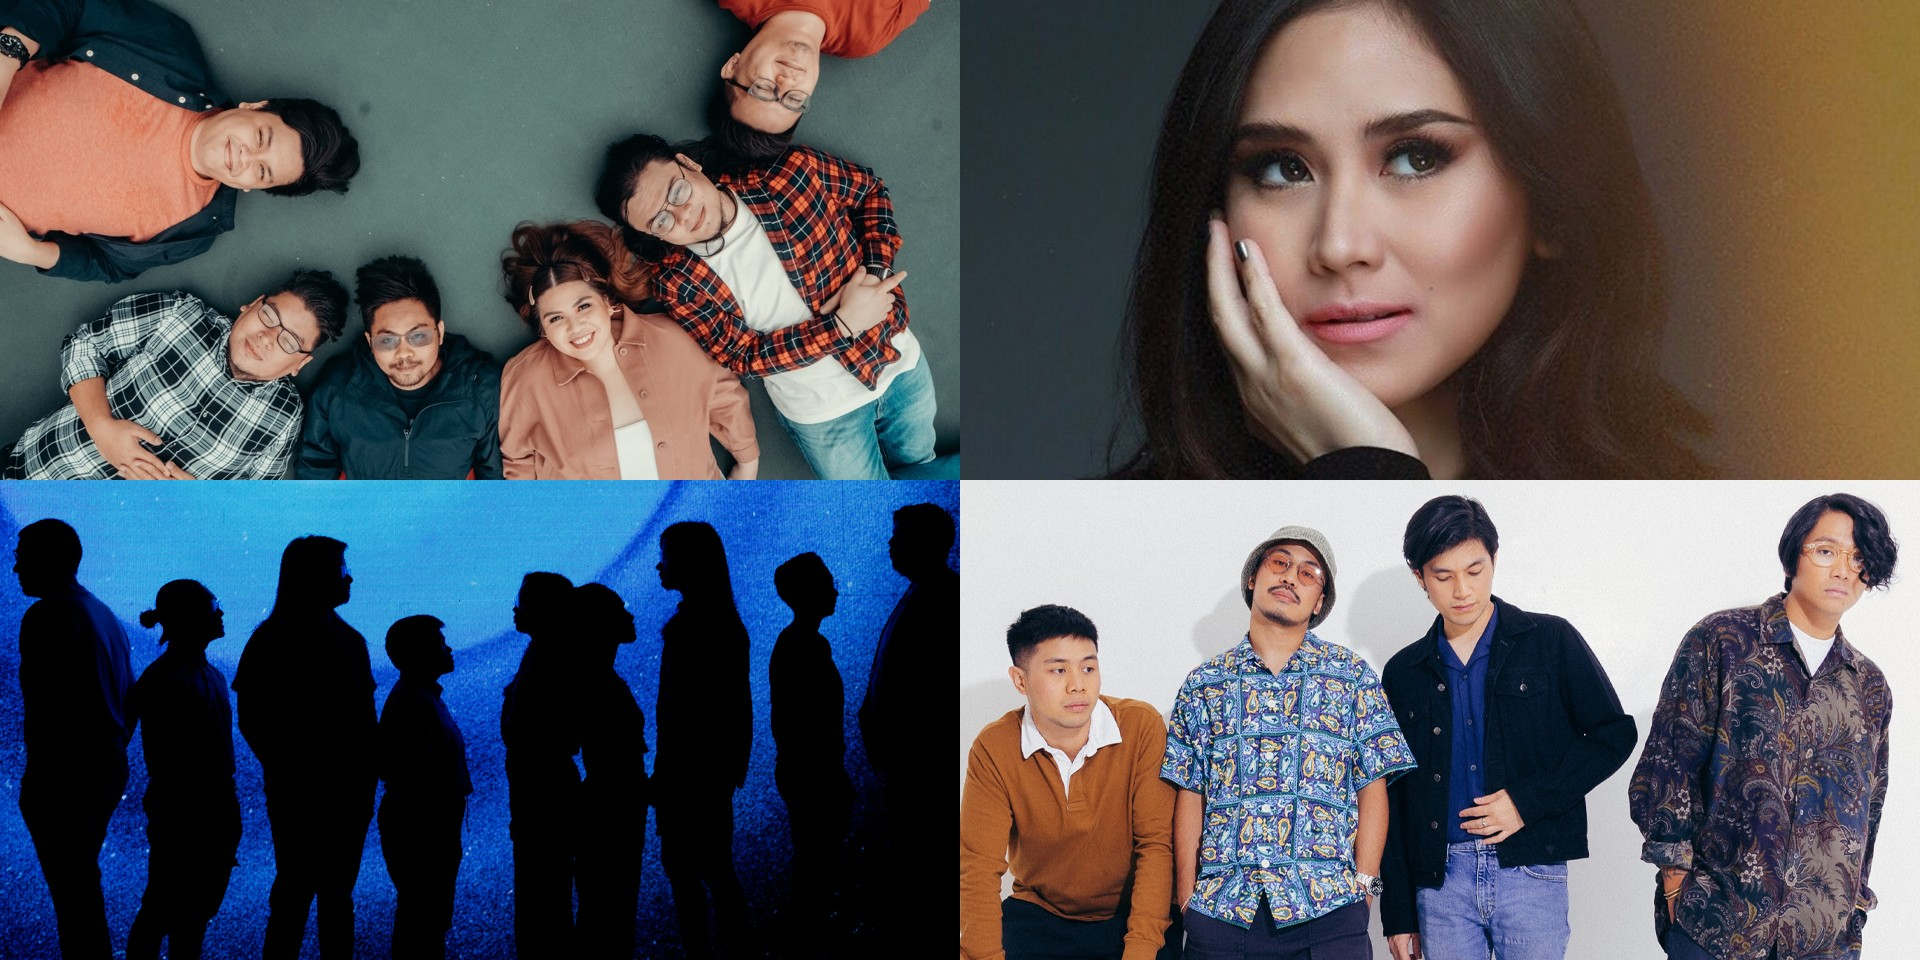 She's Only Sixteen, Autotelic, Sarah Geronimo, Ben&Ben, and more release new music – listen